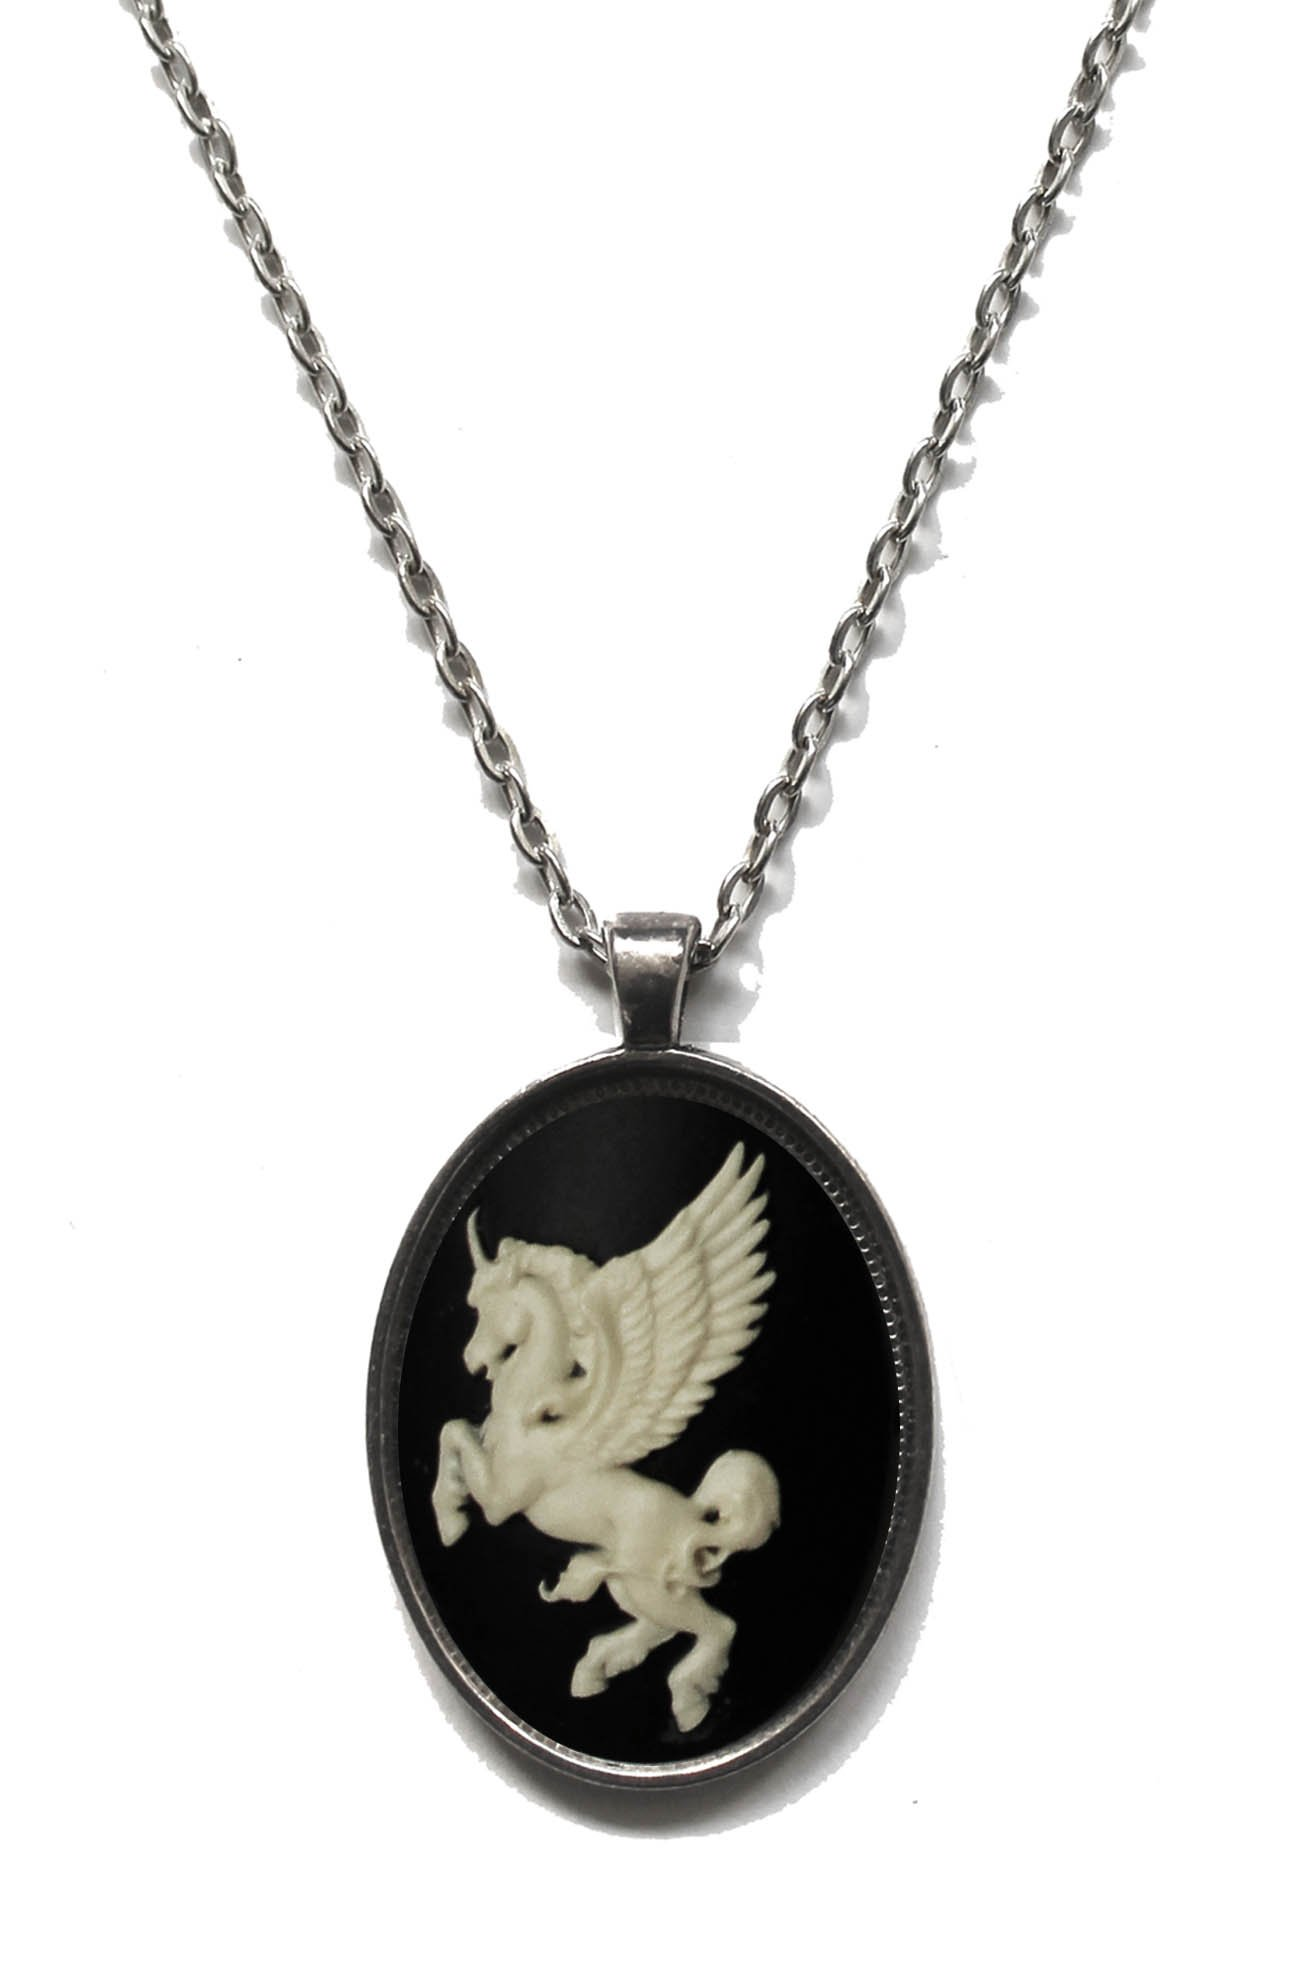 Victorian Vault Unicorn Horse Cameo Steampunk Gothic Pendant Necklace on Chain